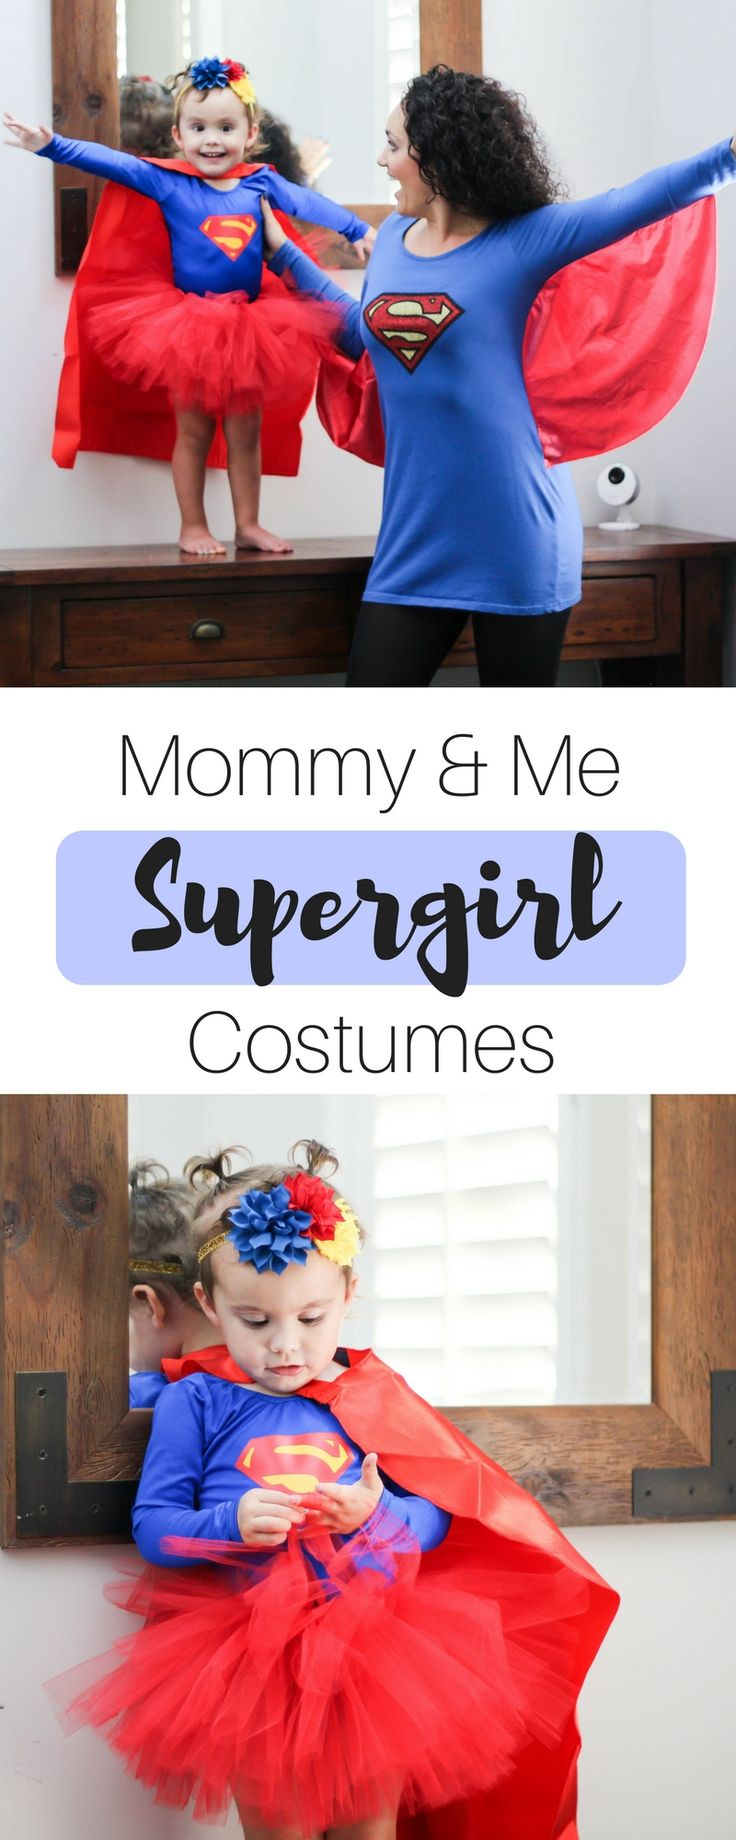 SuperGirl Costumes | Mommy and Me Costumes | Family Costumes | Super Hero Costumes | Leotards | Super Girl | Halloween | Busy Little Izzy Blog | #momblog #supergirl #halloween #mommyandme #fashionblogger #halloweencostume #superhero